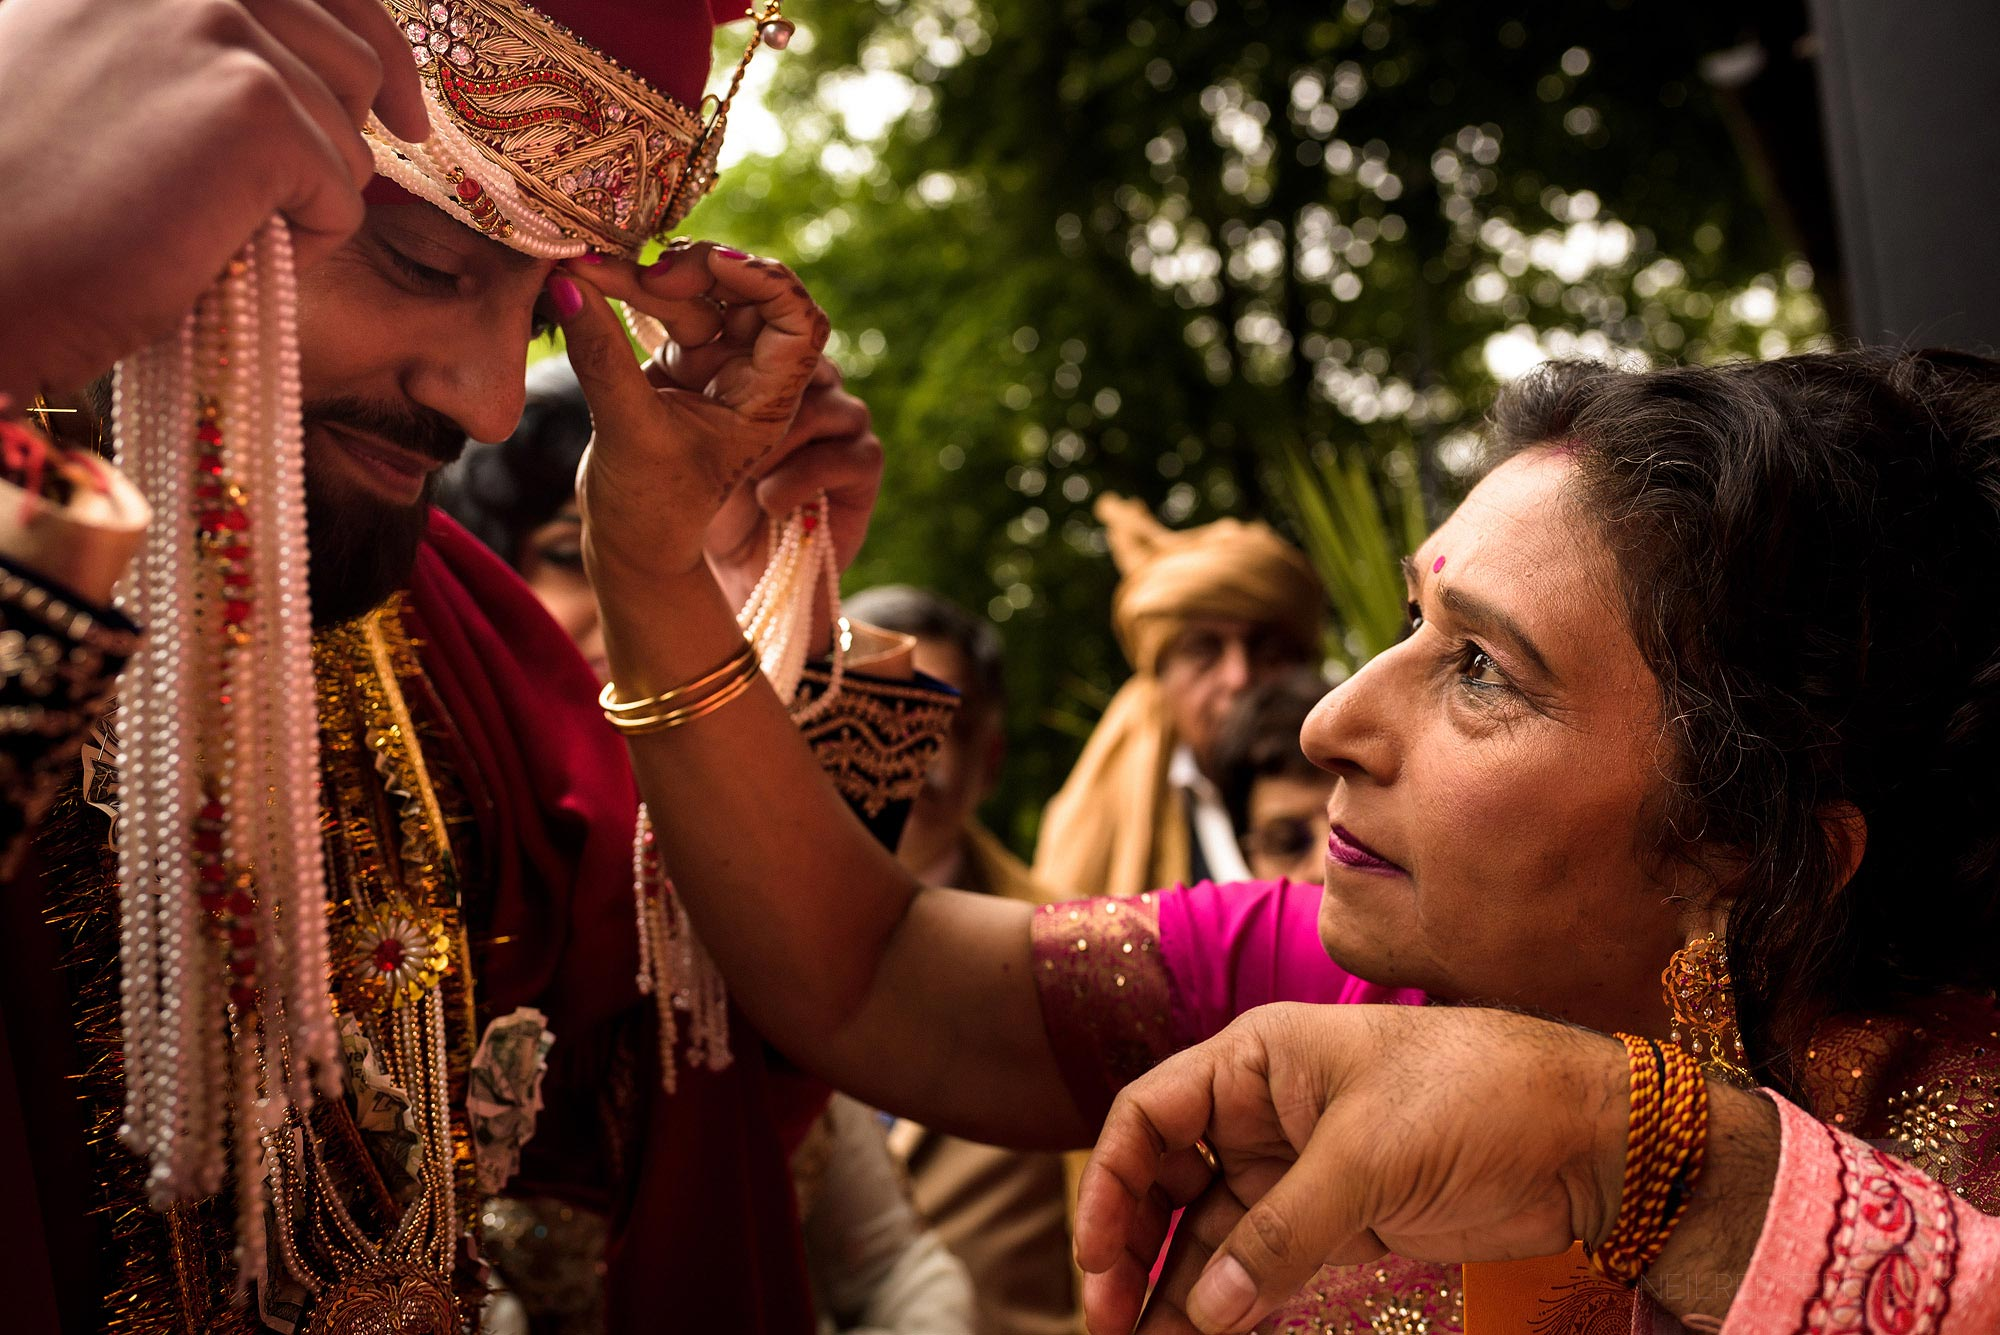 special moment during Indian wedding